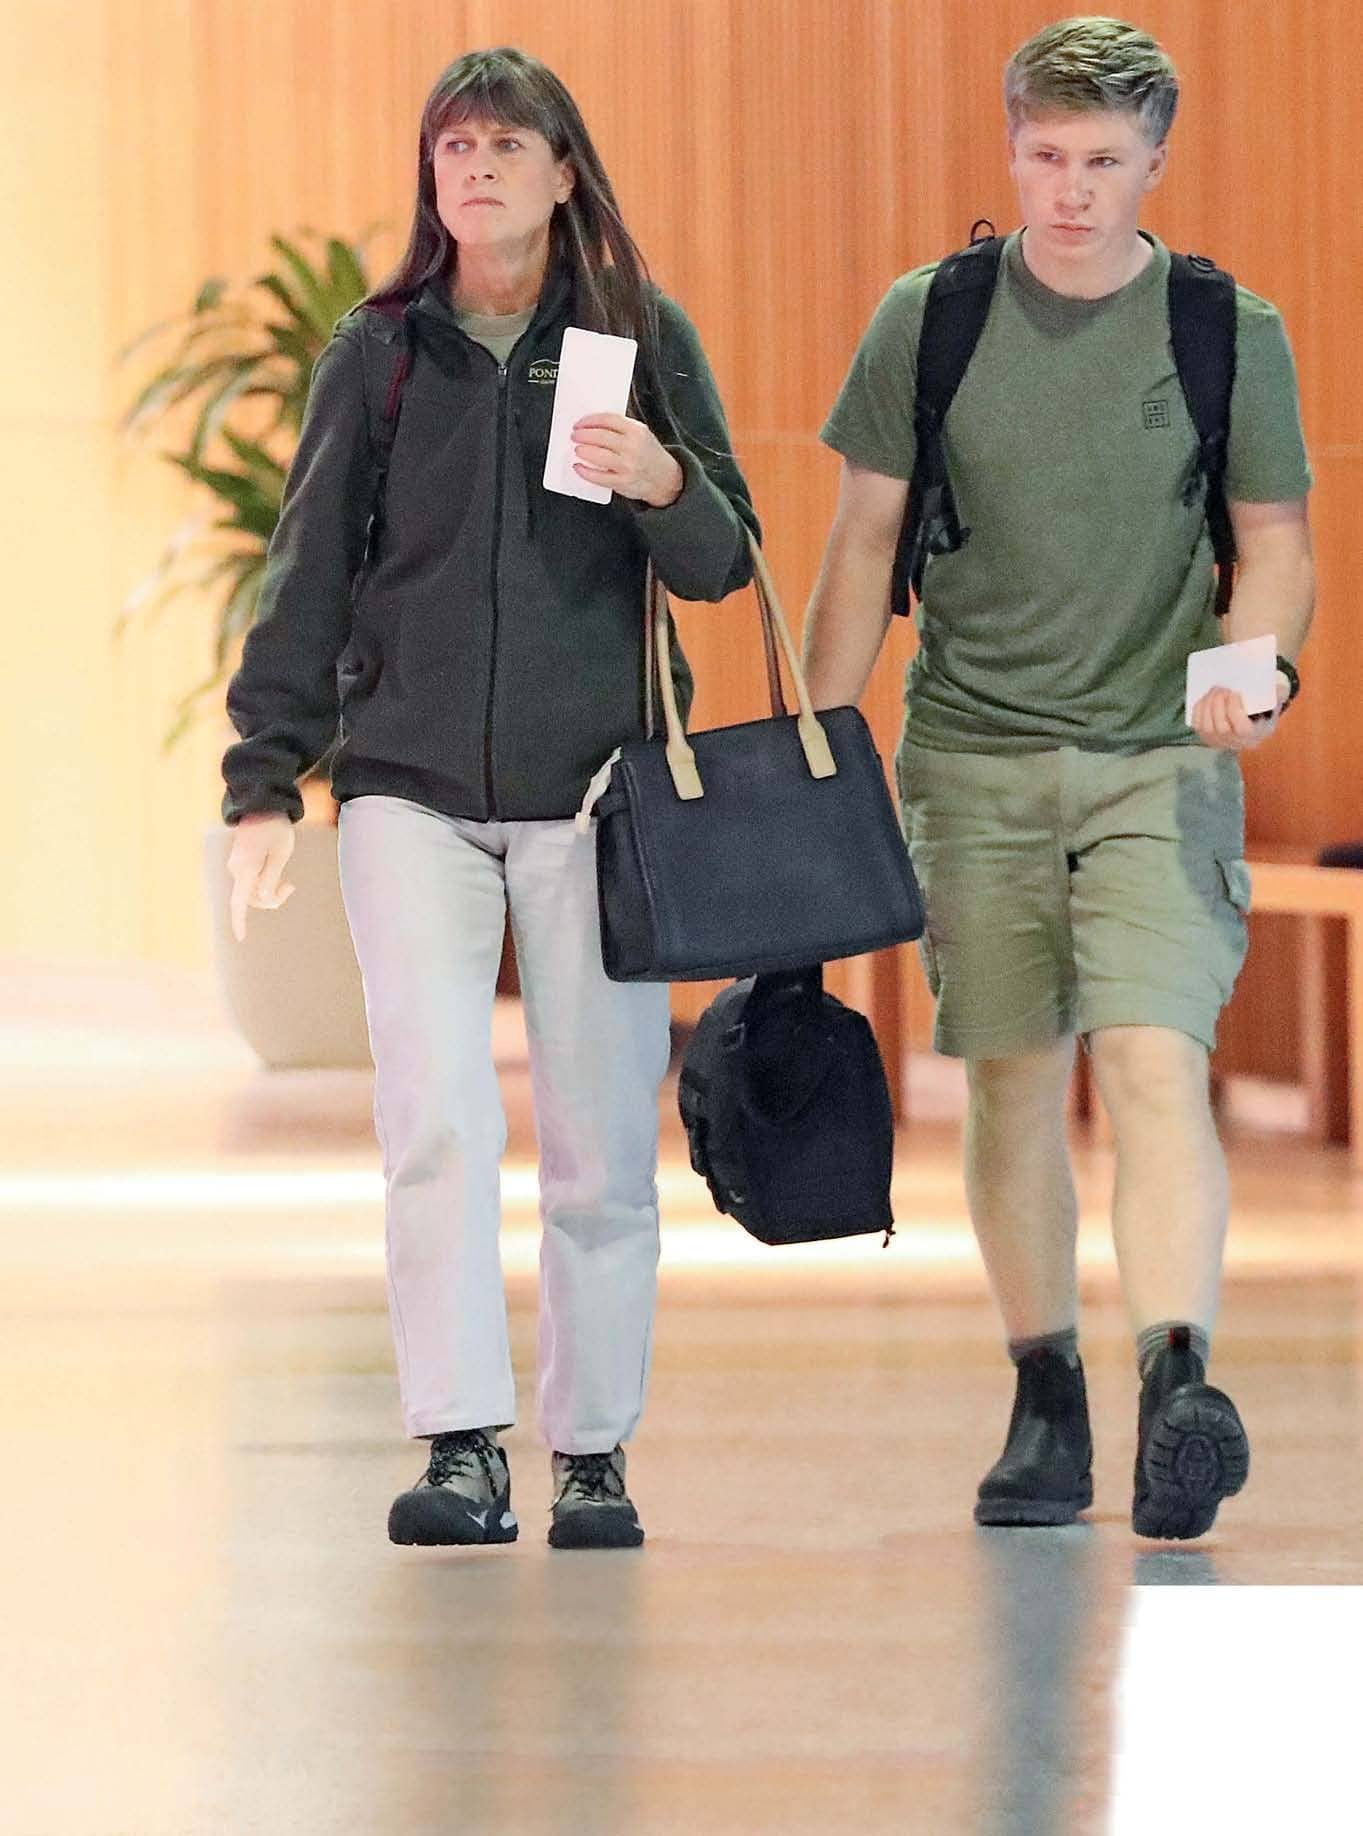 Bob Irwin's Outburst - 'I'm Not Coming To The Wedding!'